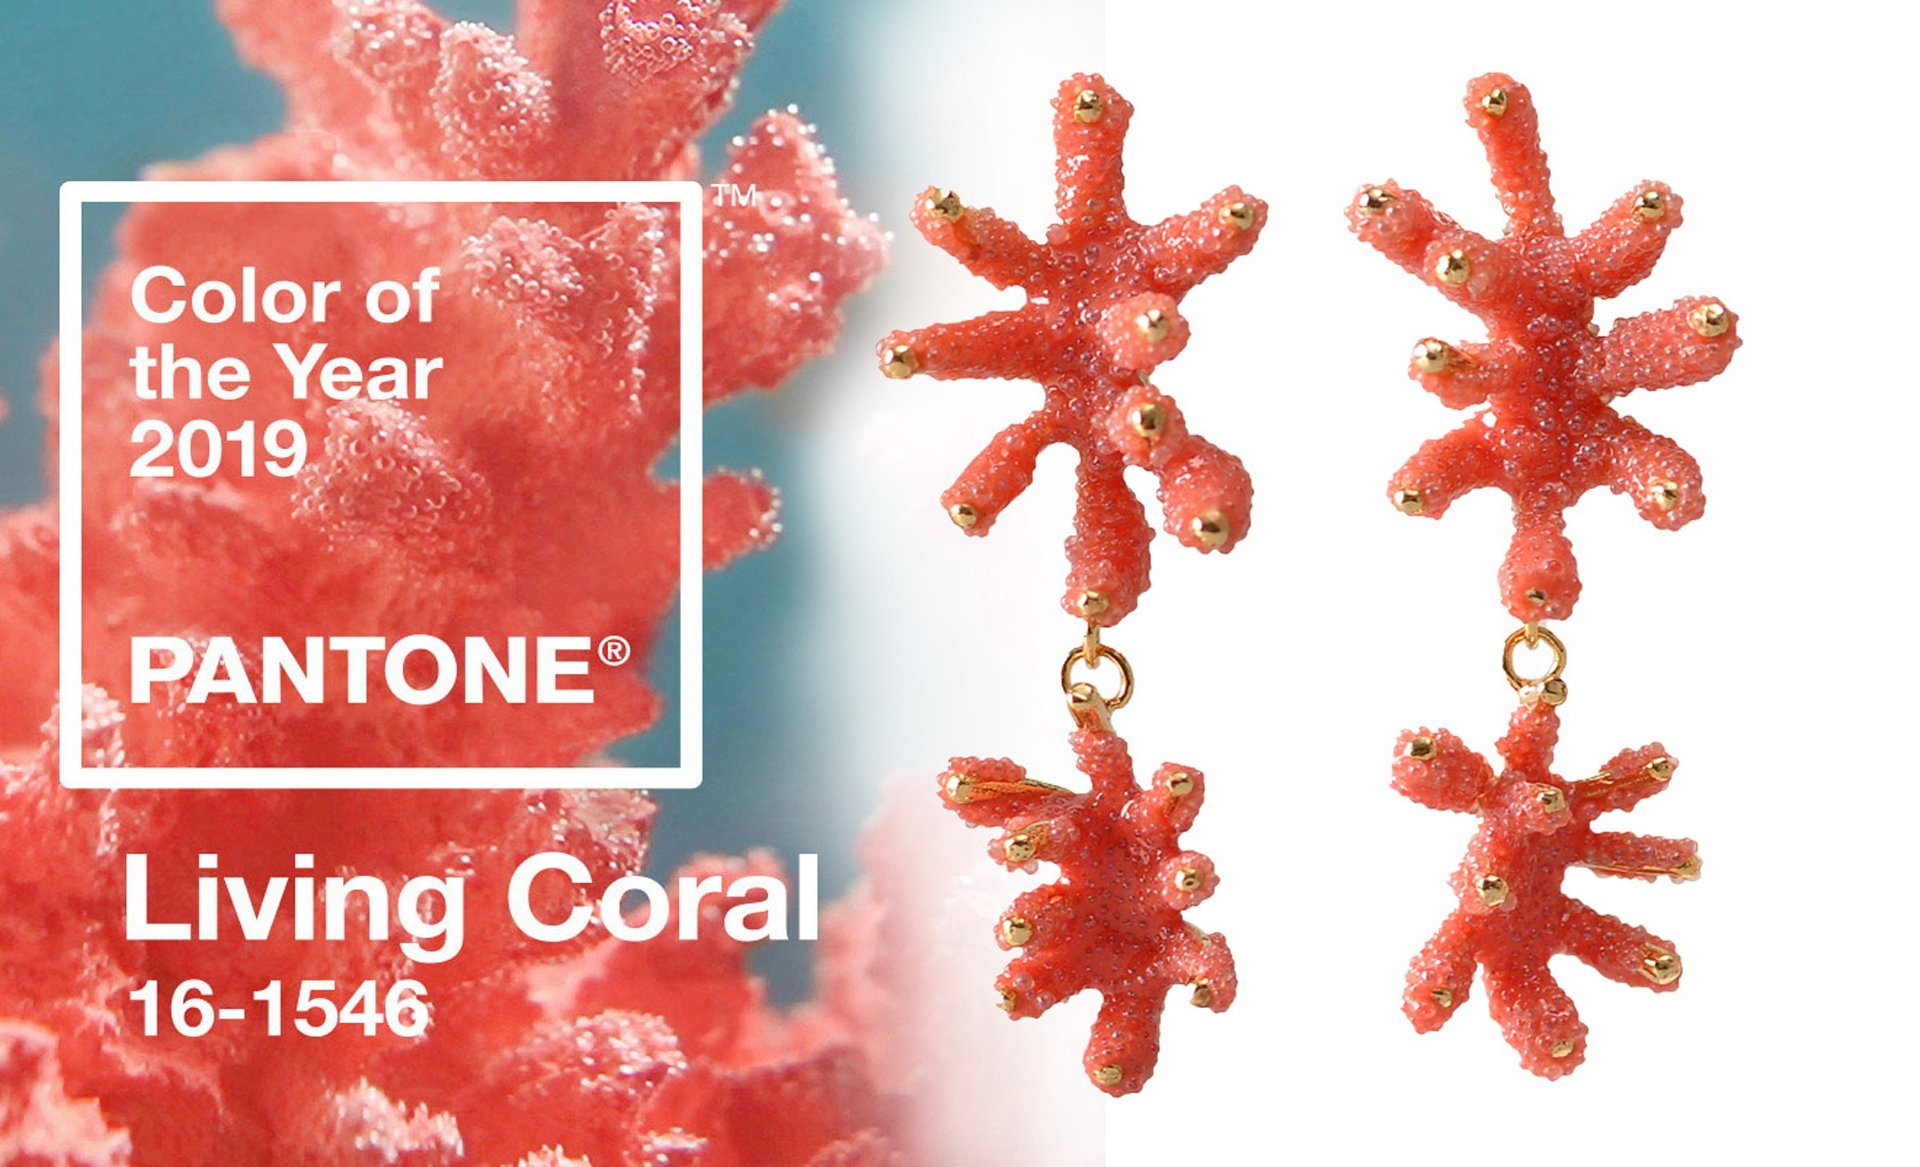 pantone 2019, color of the year, living coral, gioielli corallo, Aisegul telli,